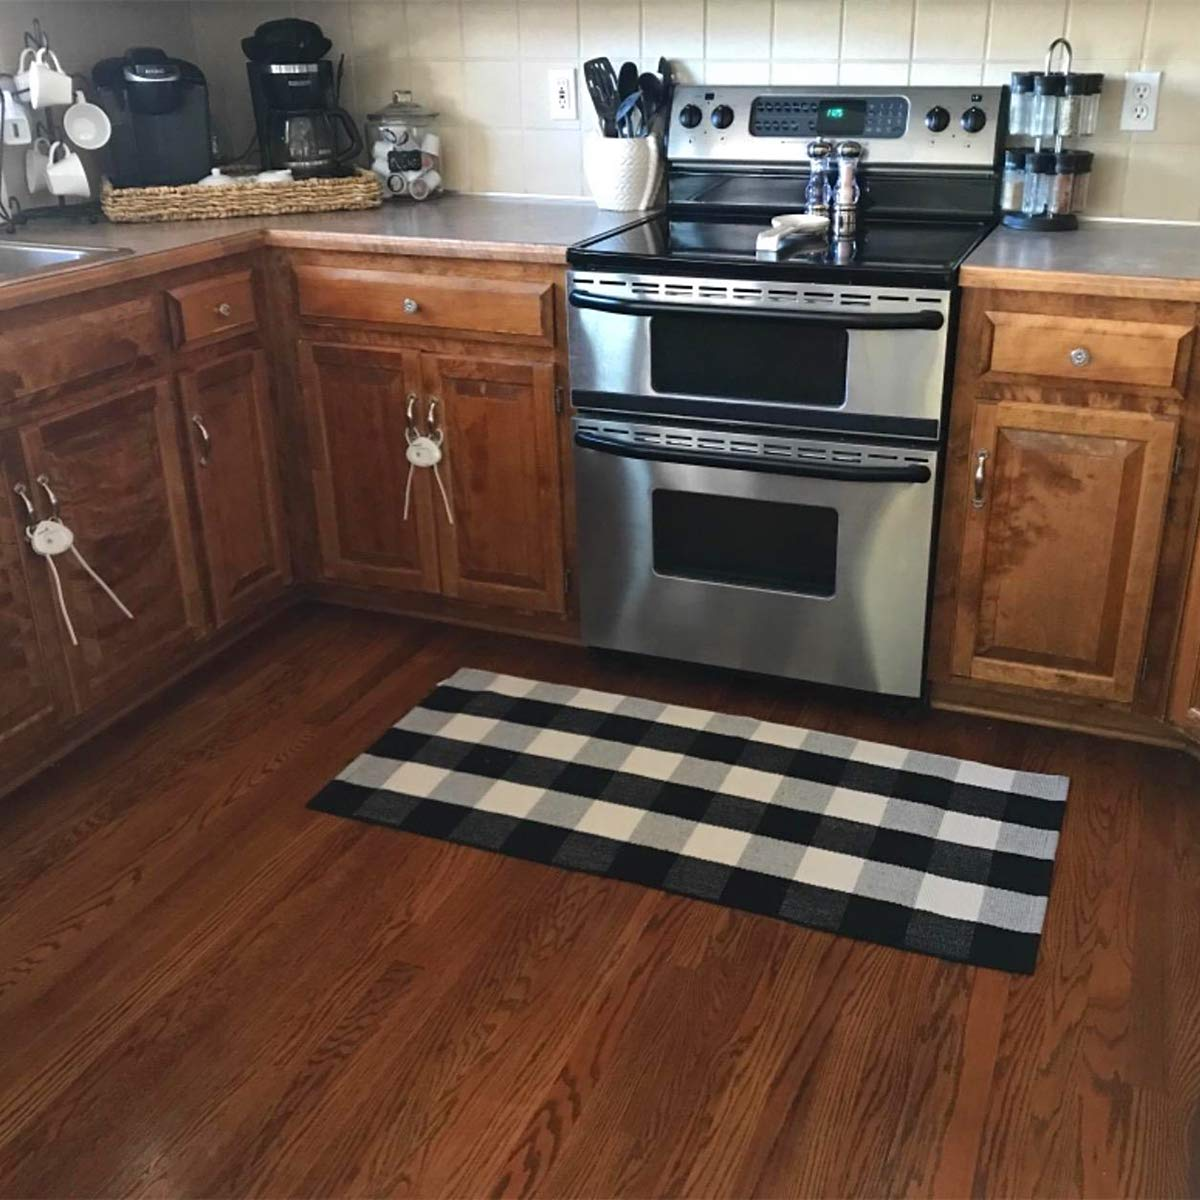 Ukeler Buffalo Plaid Rugs- Machine Washable Black and White Checkered Plaid  Rug Hand-Woven Buffalo Checkered Kitchen Runner Rugs 24\'\'x51\'\'